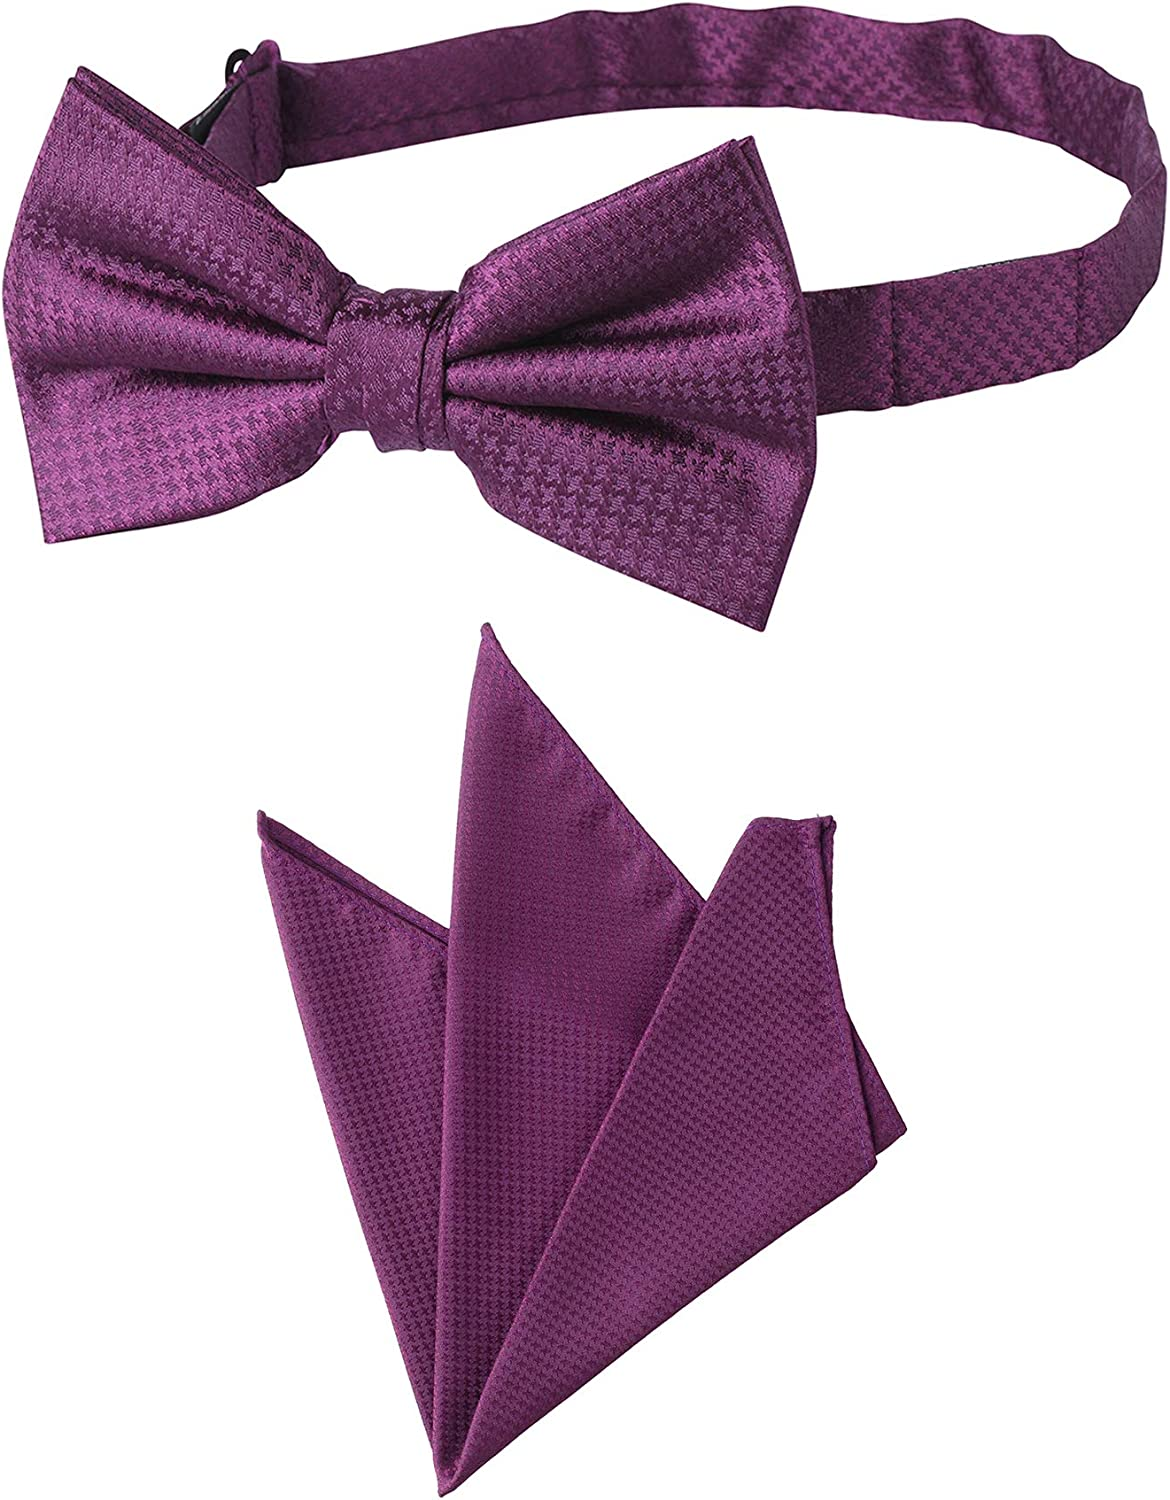 Jacob Alexander Men's Tone on Tone Houndstooth Pre-Tied Banded Bow Tie and Pocket Square Set